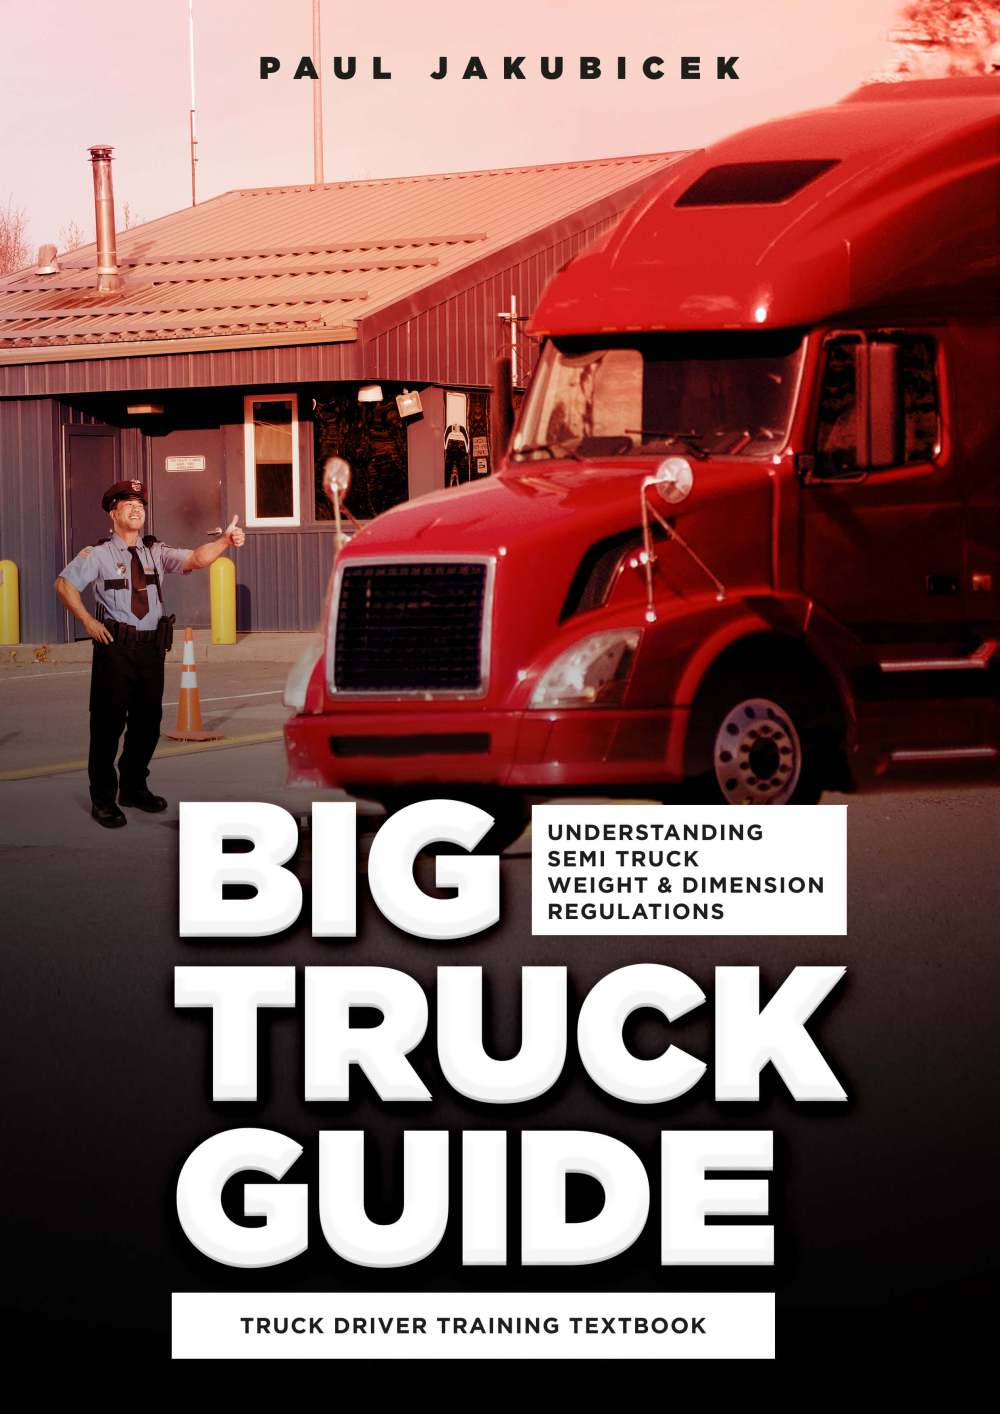 medium resolution of understanding truck weights and dimensions e textbook and training program